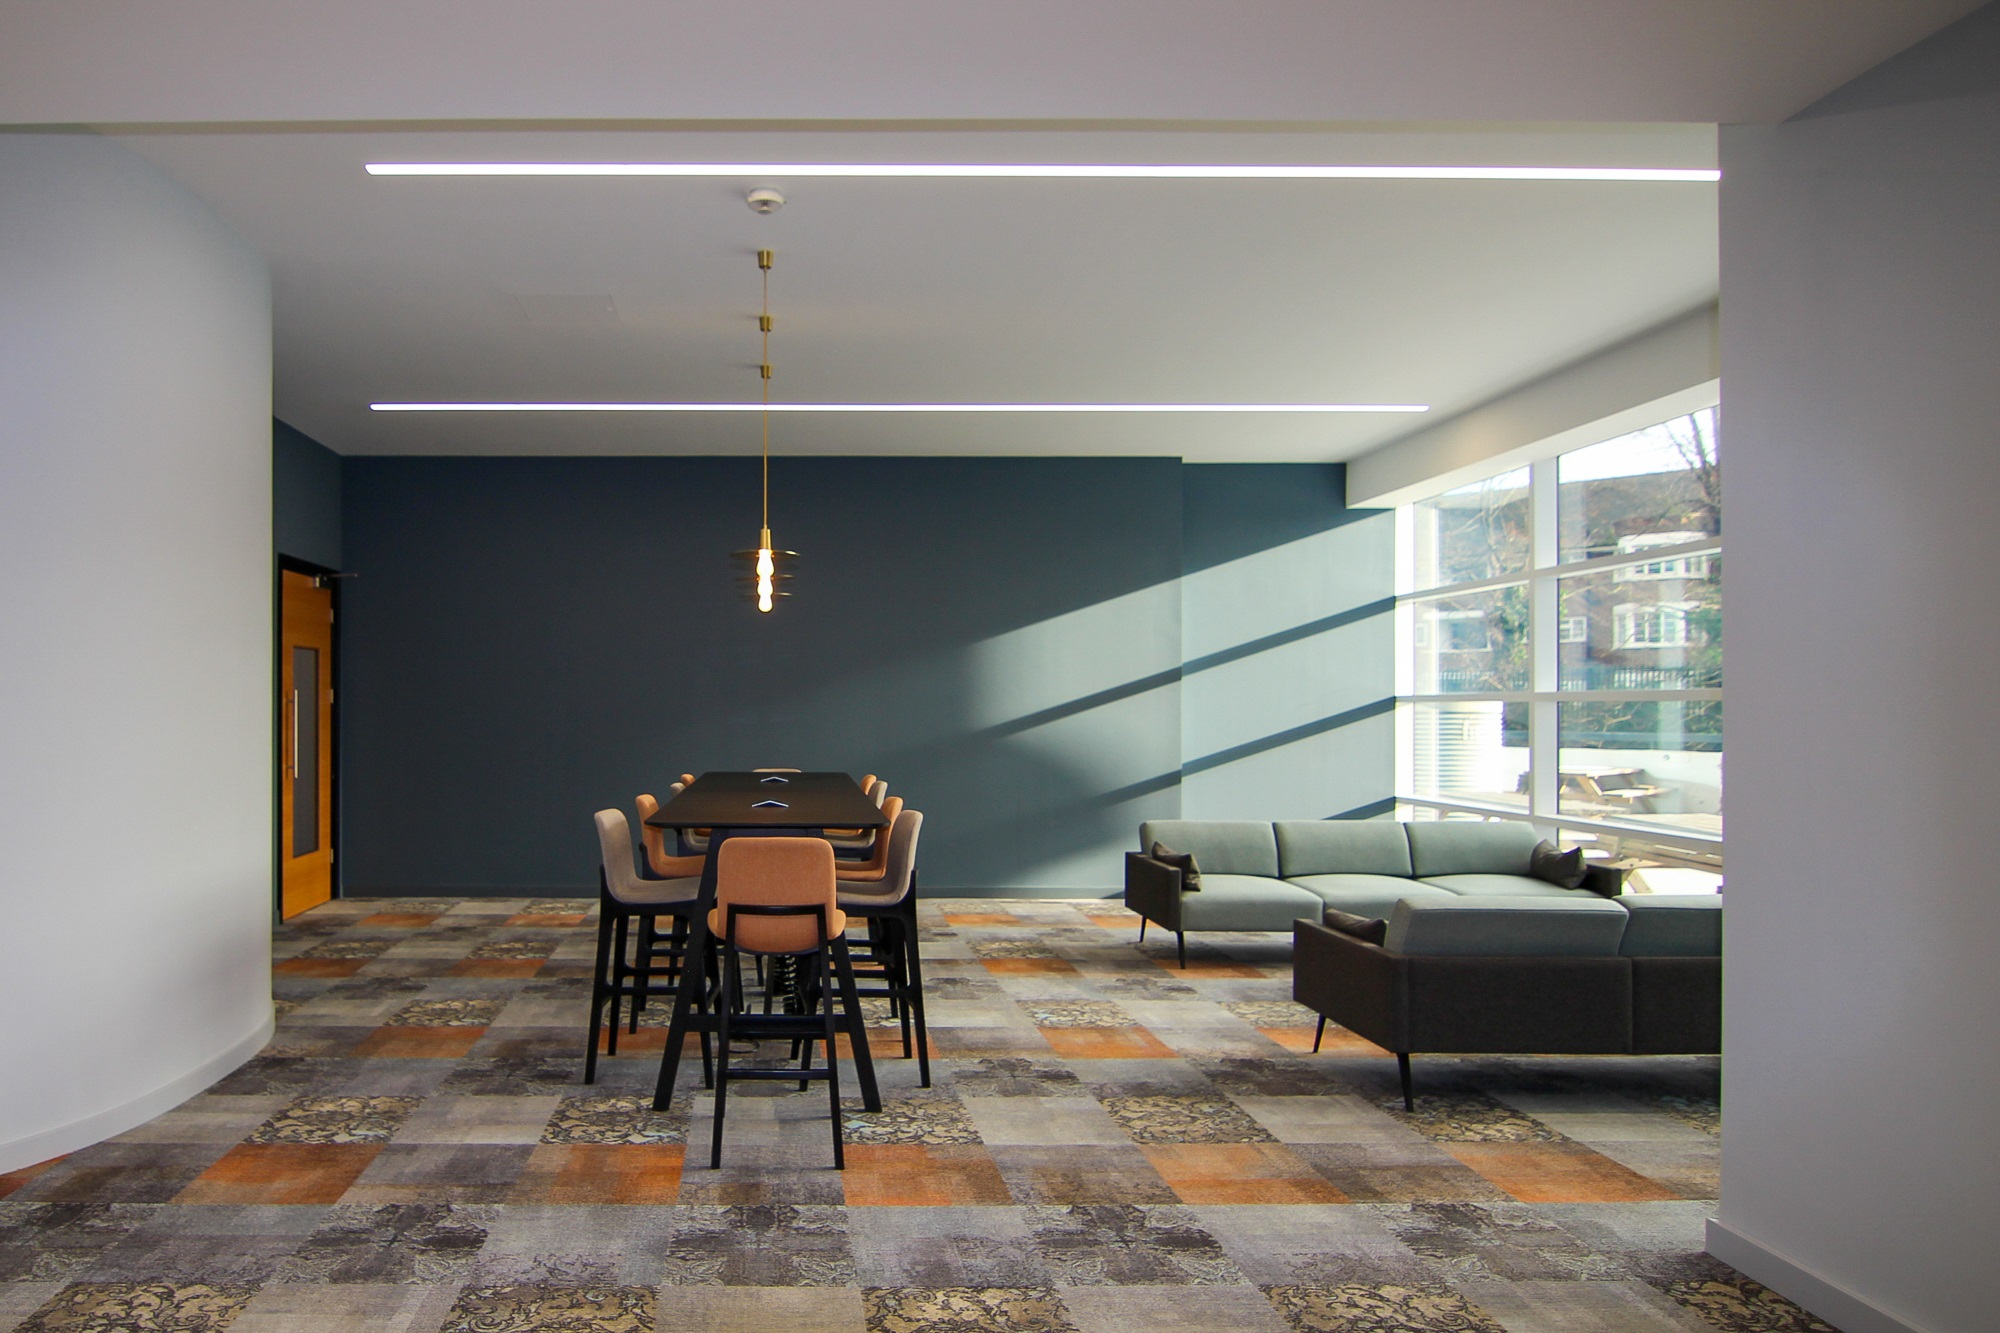 open room design with a glass wall, table and sofas